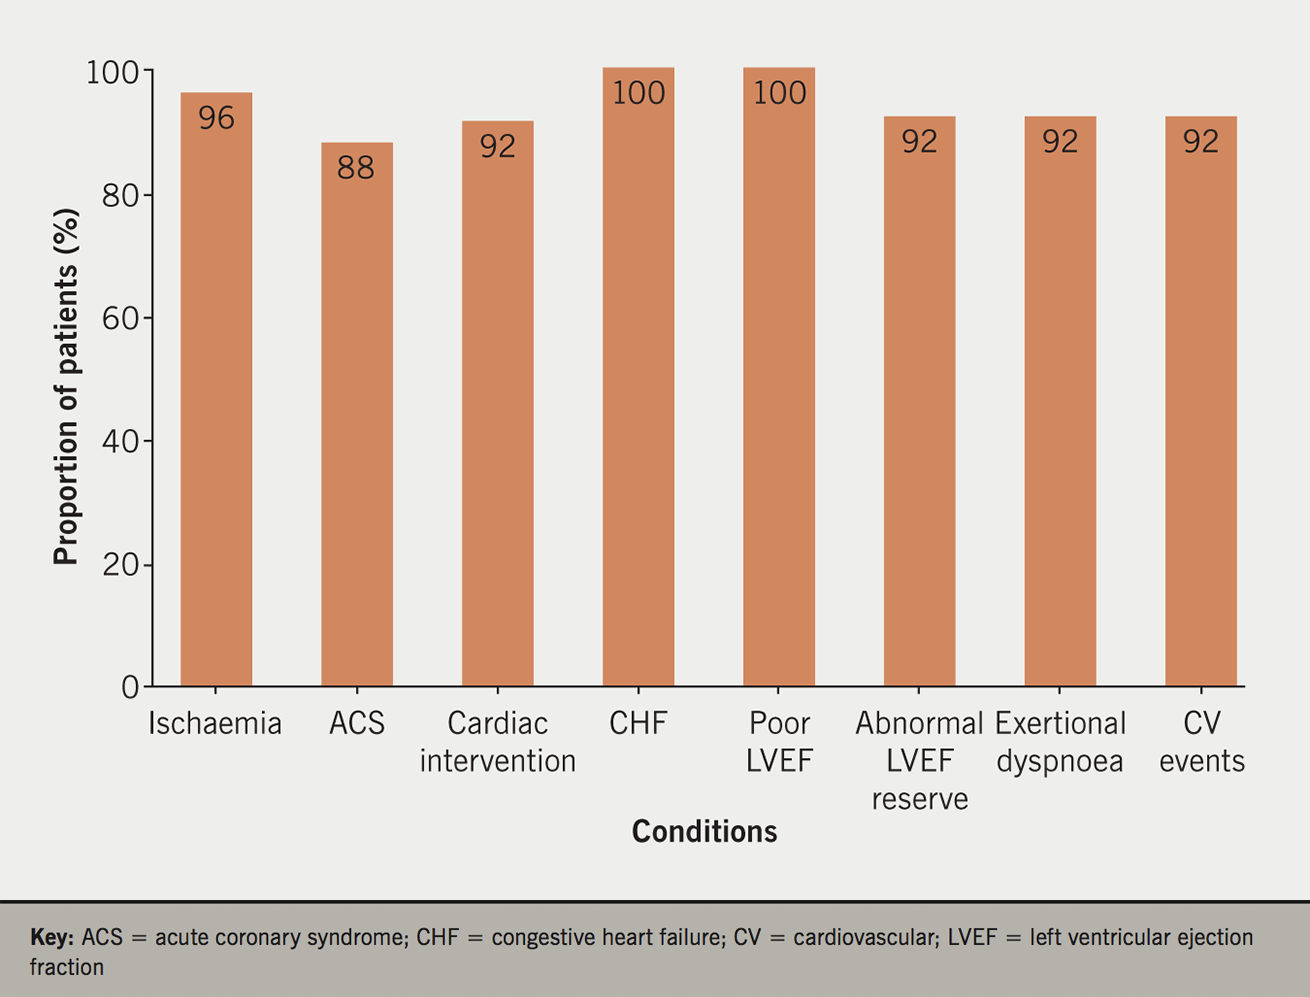 MacGregor Figure 2. Proportions of patients with evidence of ischaemia or congestive heart failure (CHF) who were treated with at least one of antiplatelet, statin, angiotensin-converting enzyme (ACE) inhibitor or beta blocker